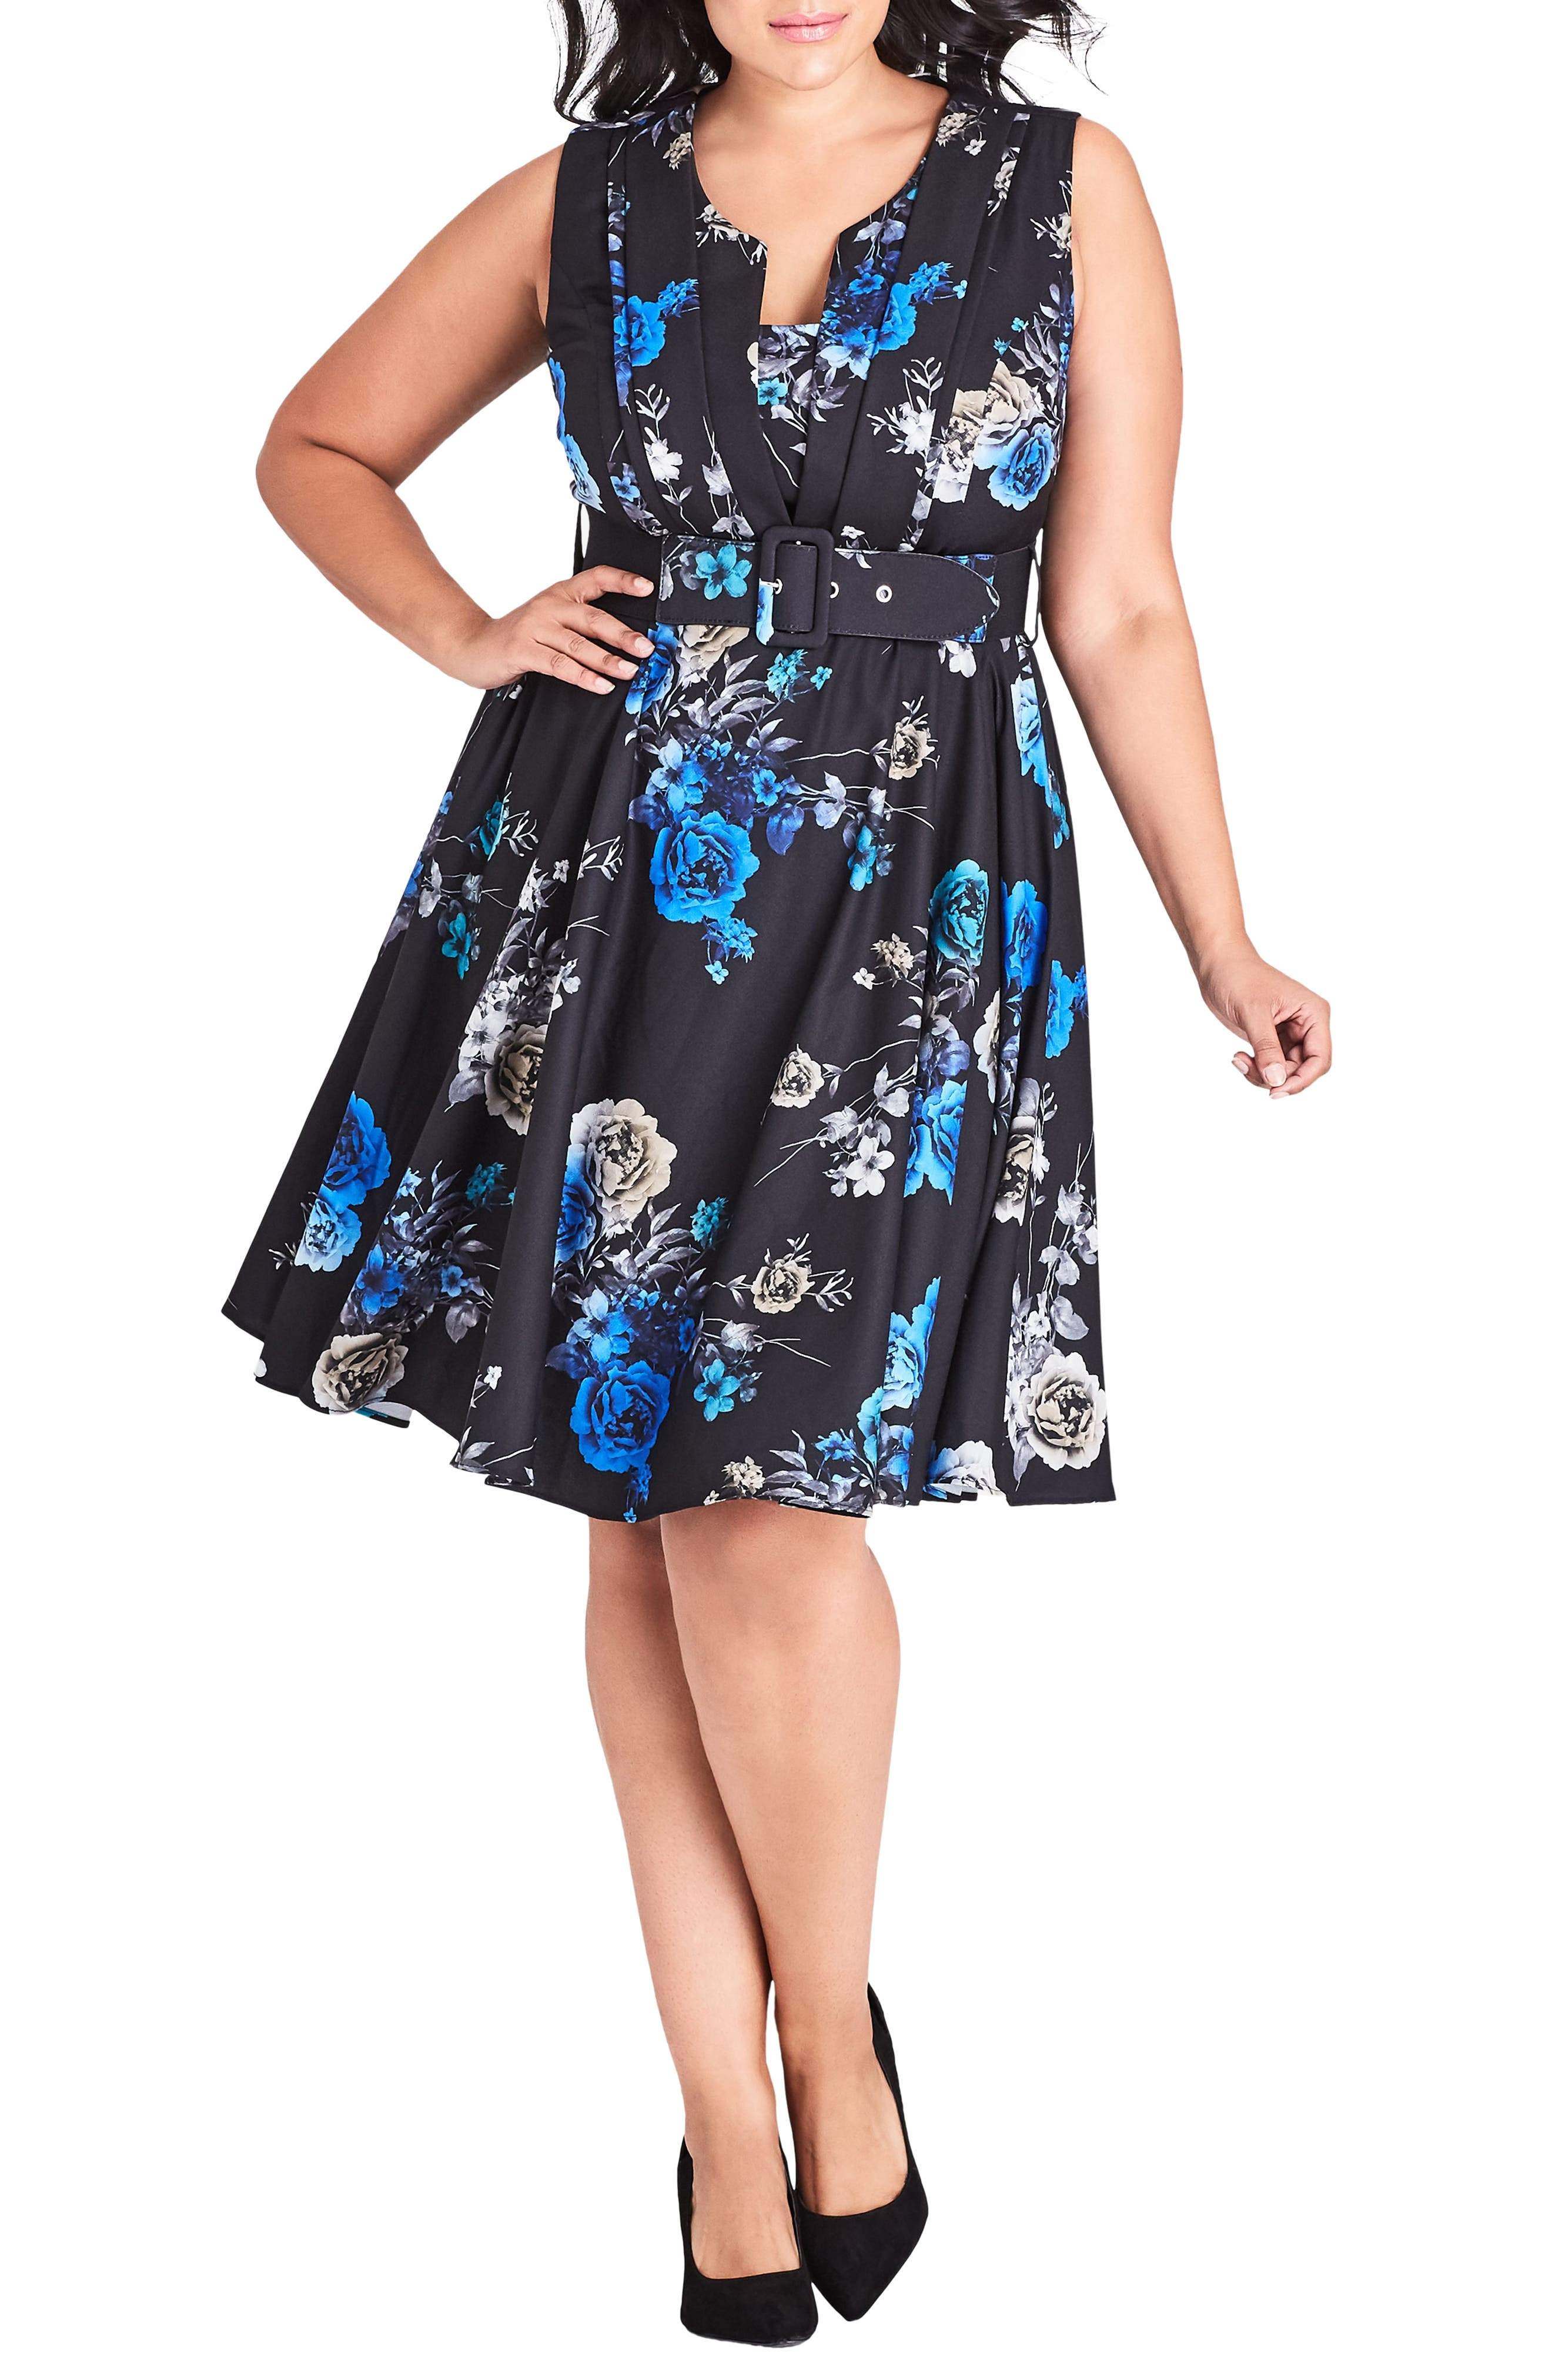 Plus Size Chic Chic Bouquet Sleeveless Fit & Flare Dress